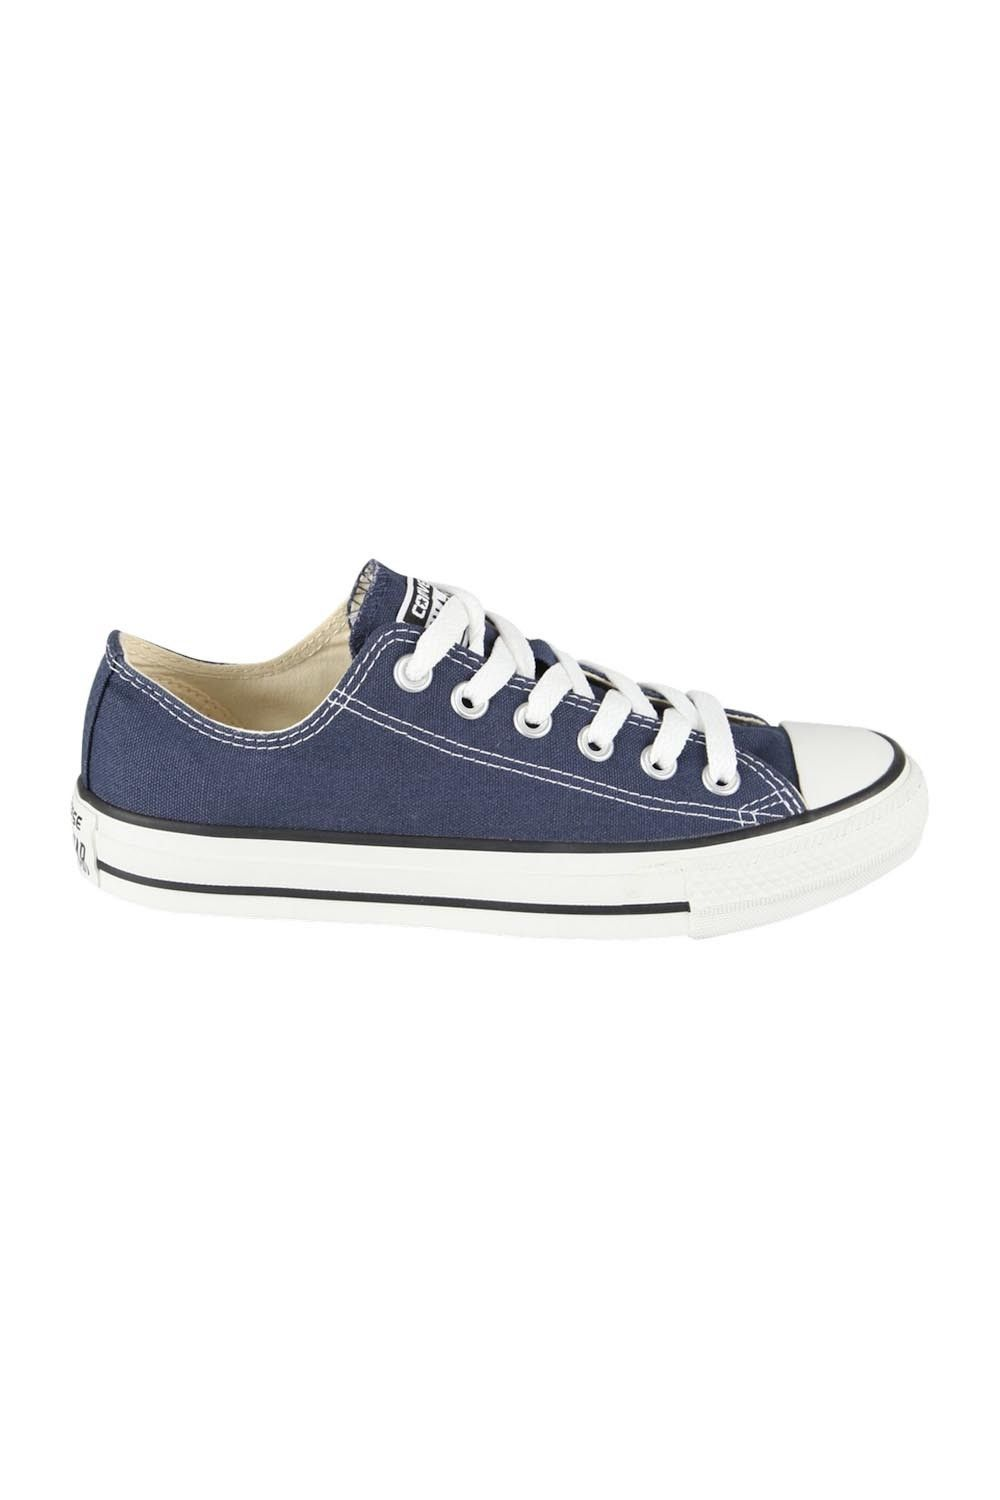 7eab05256a7 CHAUSSURES FEMME BASSES ALL STAR OX CONVERSE MARINE http   www.unclejeans.